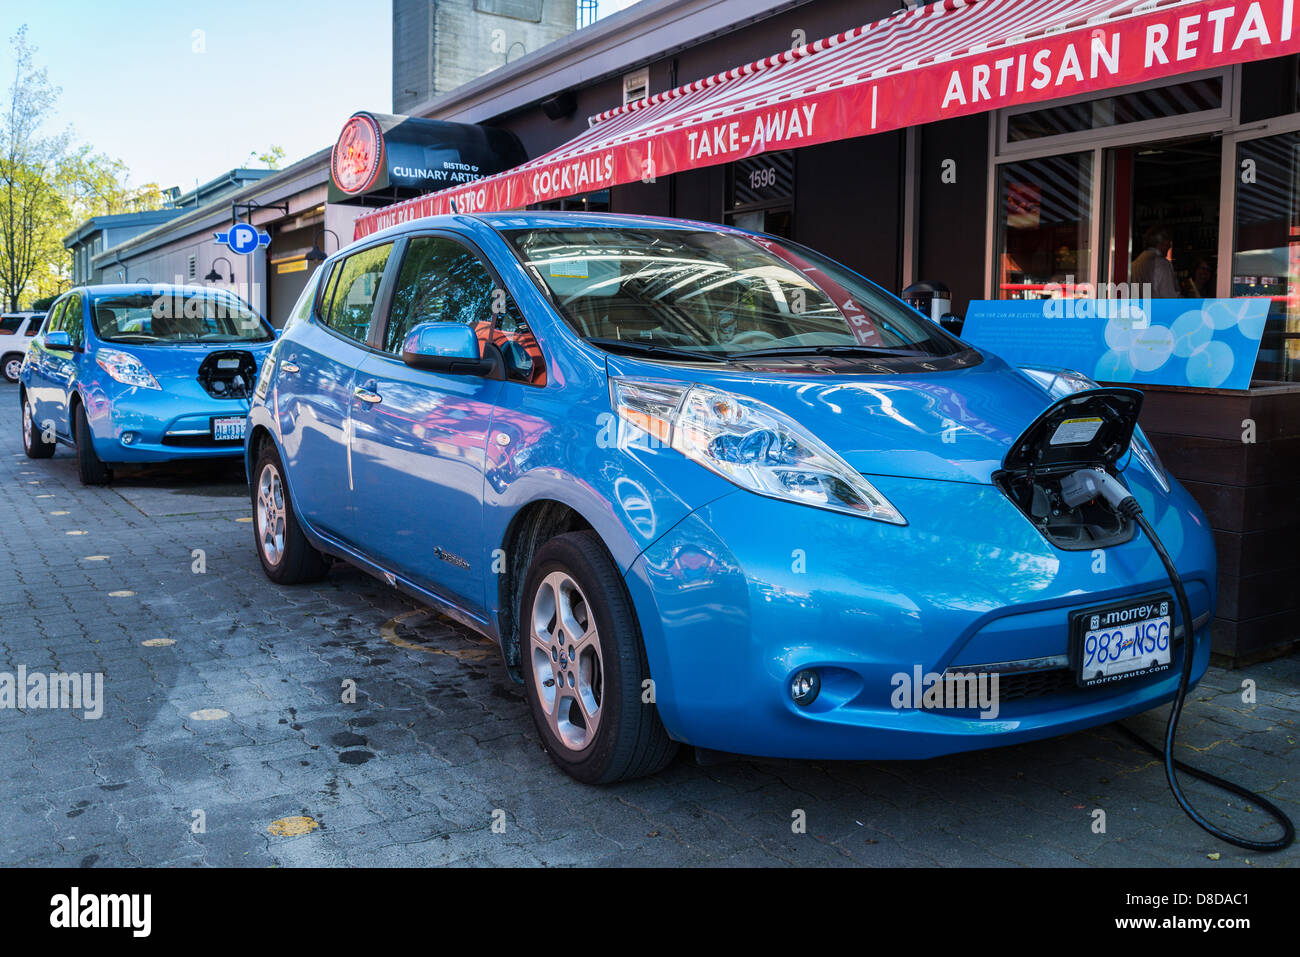 Nissan Electric car at plug in parking stall, Granville Island, Vancouver, British Columbia, Canada - Stock Image